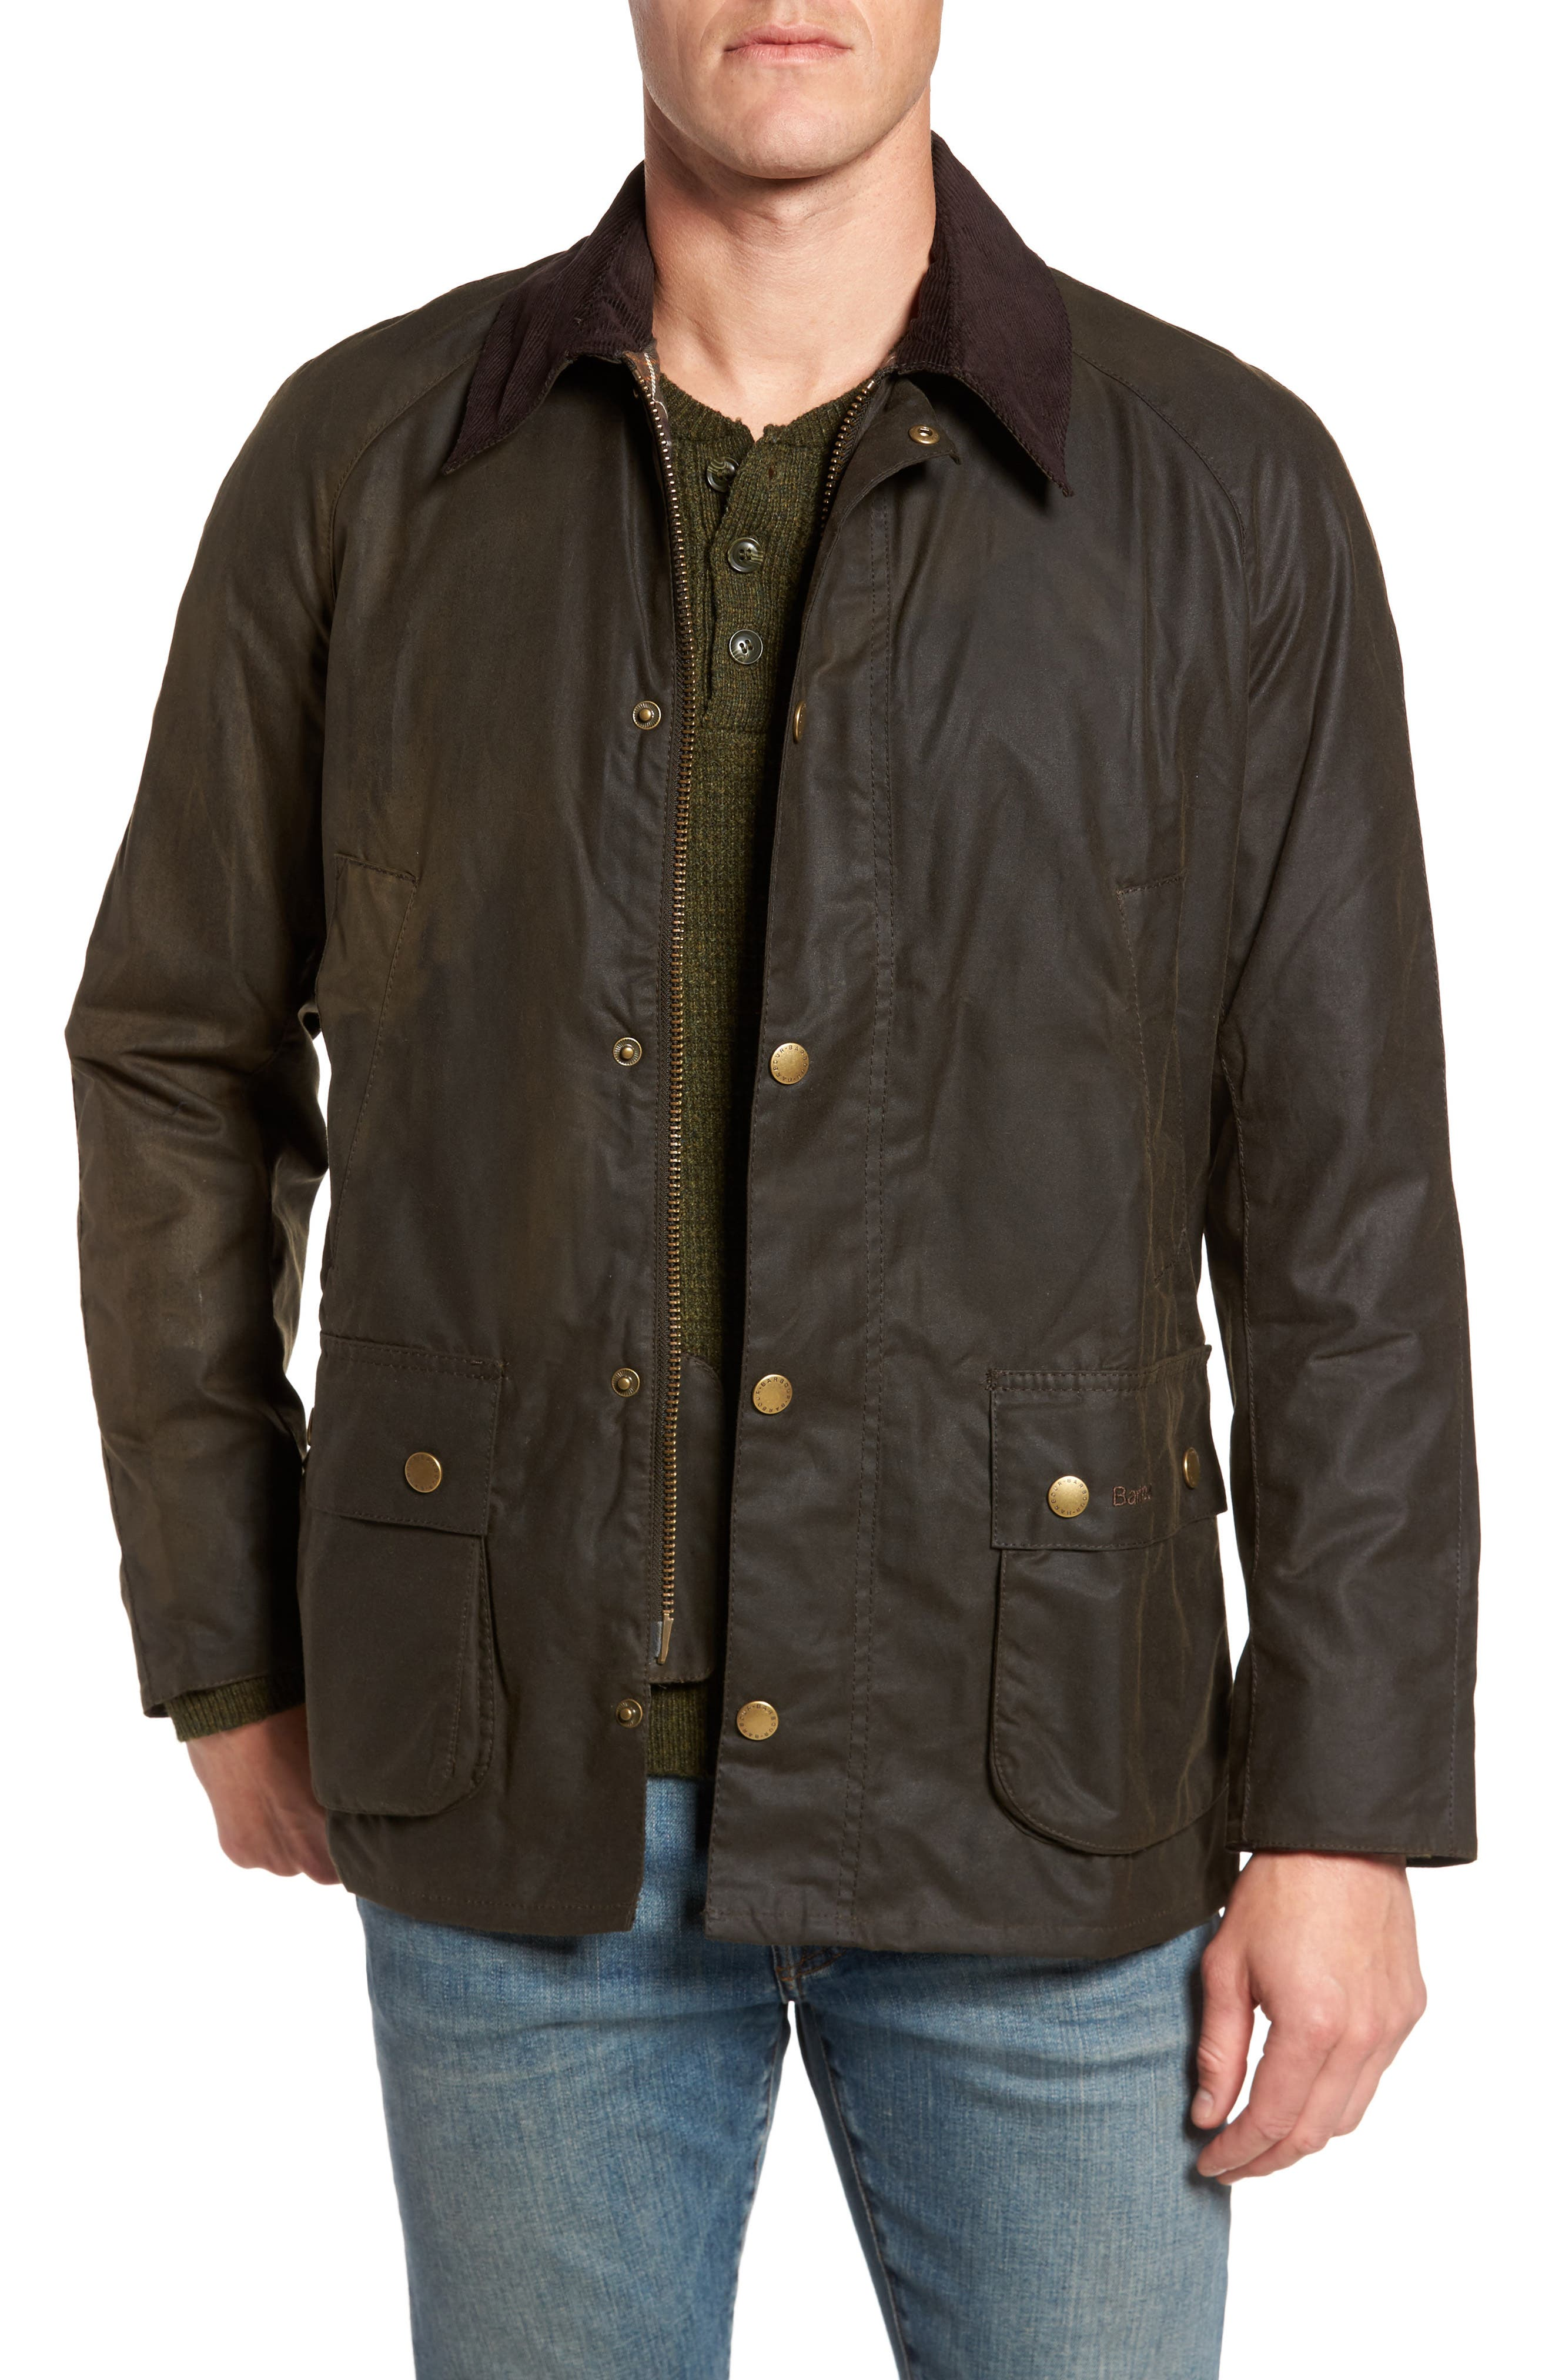 Main Image - Barbour 'Ashby' Regular Fit Waterproof Jacket